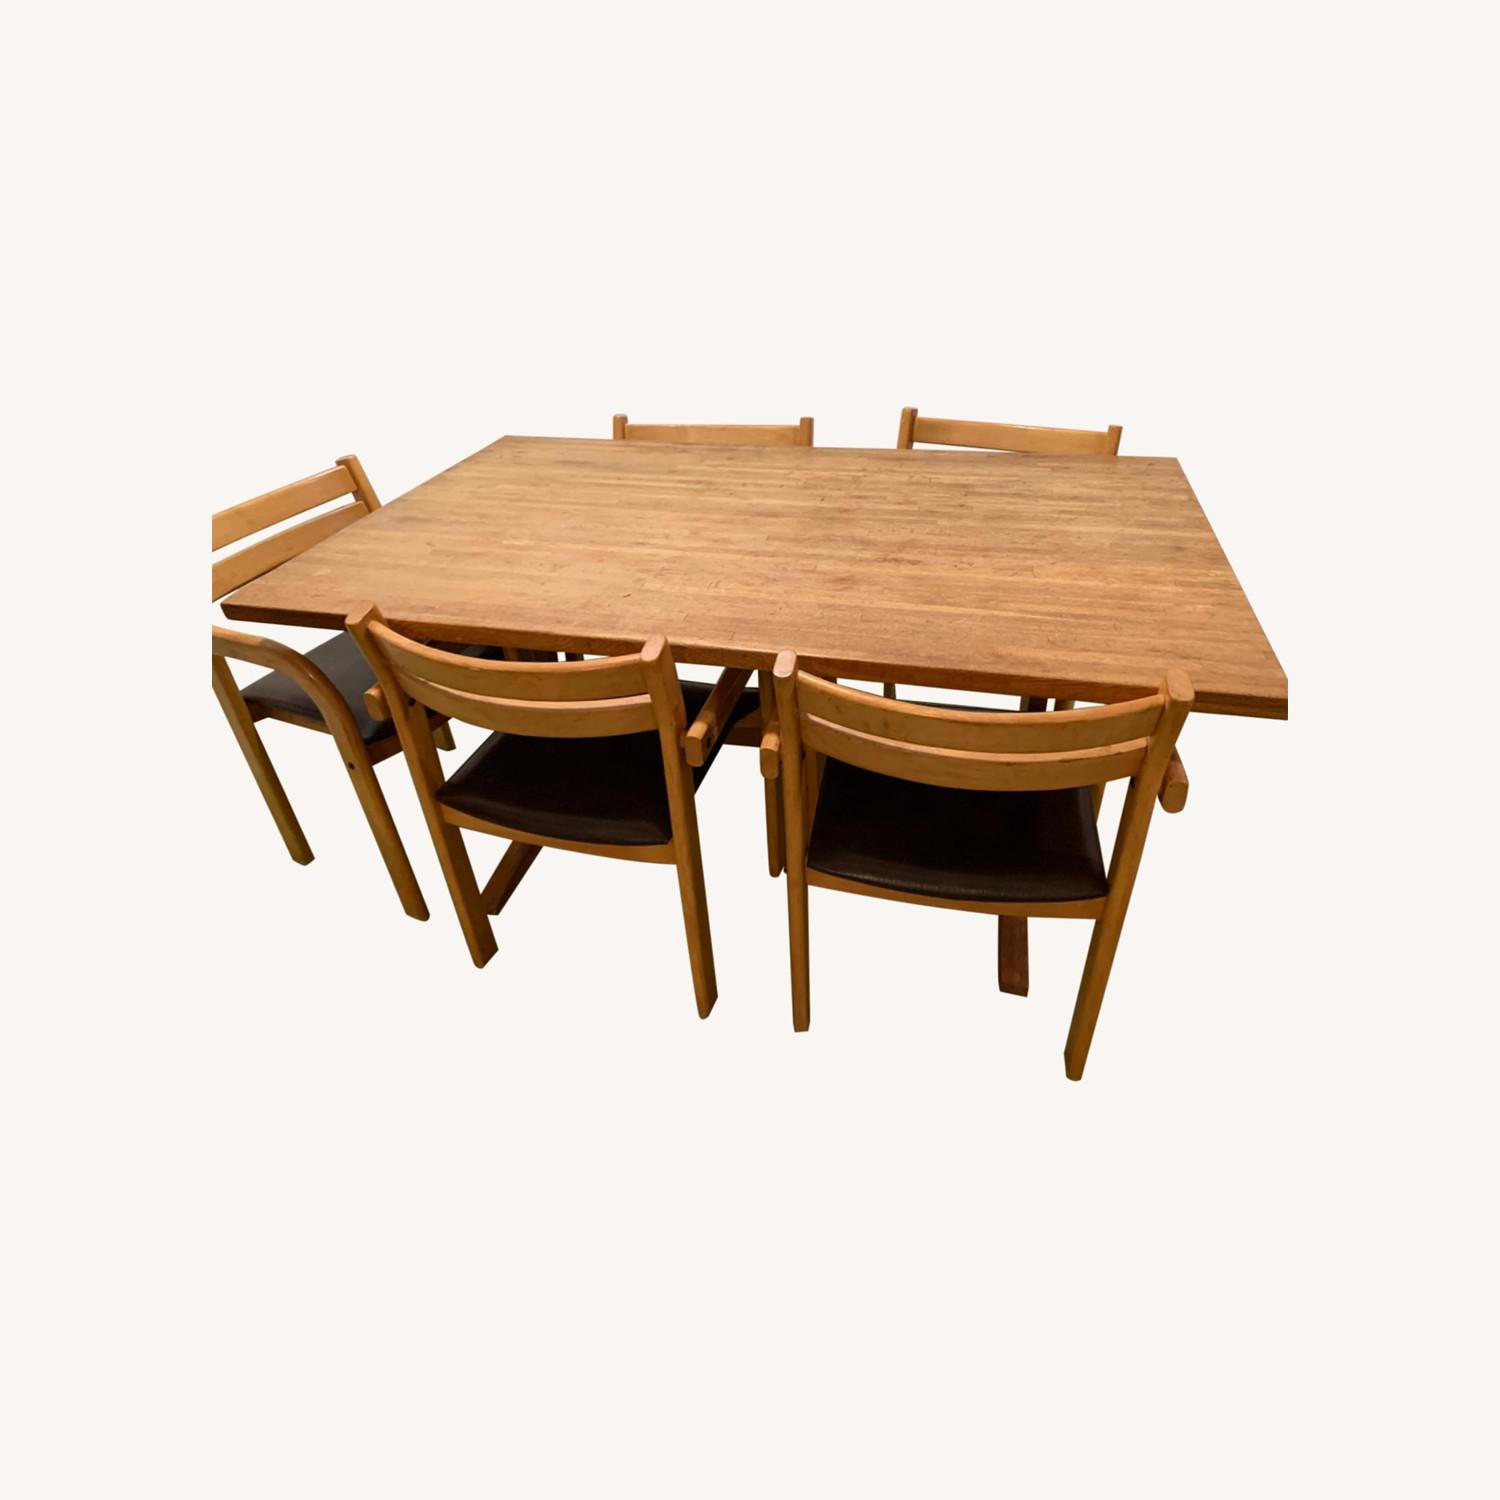 Wood Dining Table and 6 Chairs - image-0